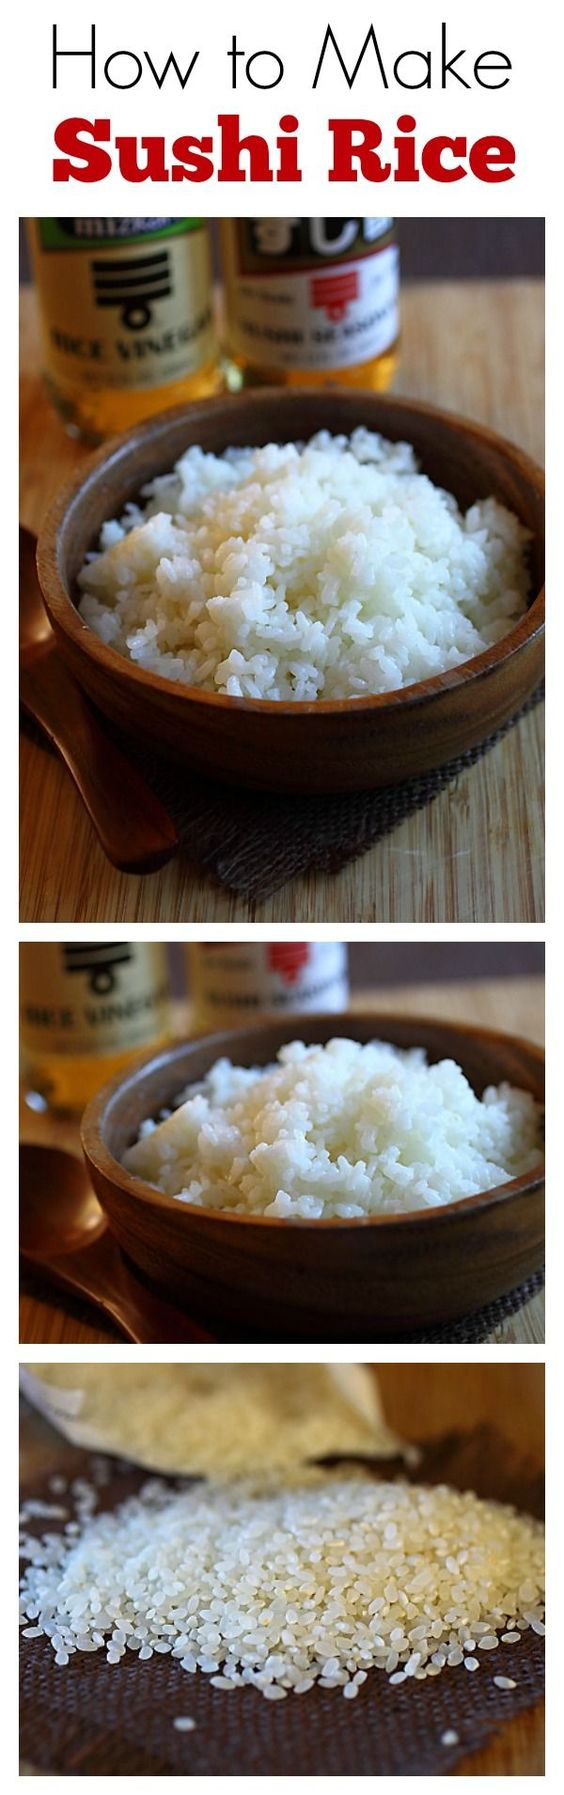 How to make sushi rice? The easiest and no-fuss recipe to make sushi rice from scratch | rasamalaysia.com